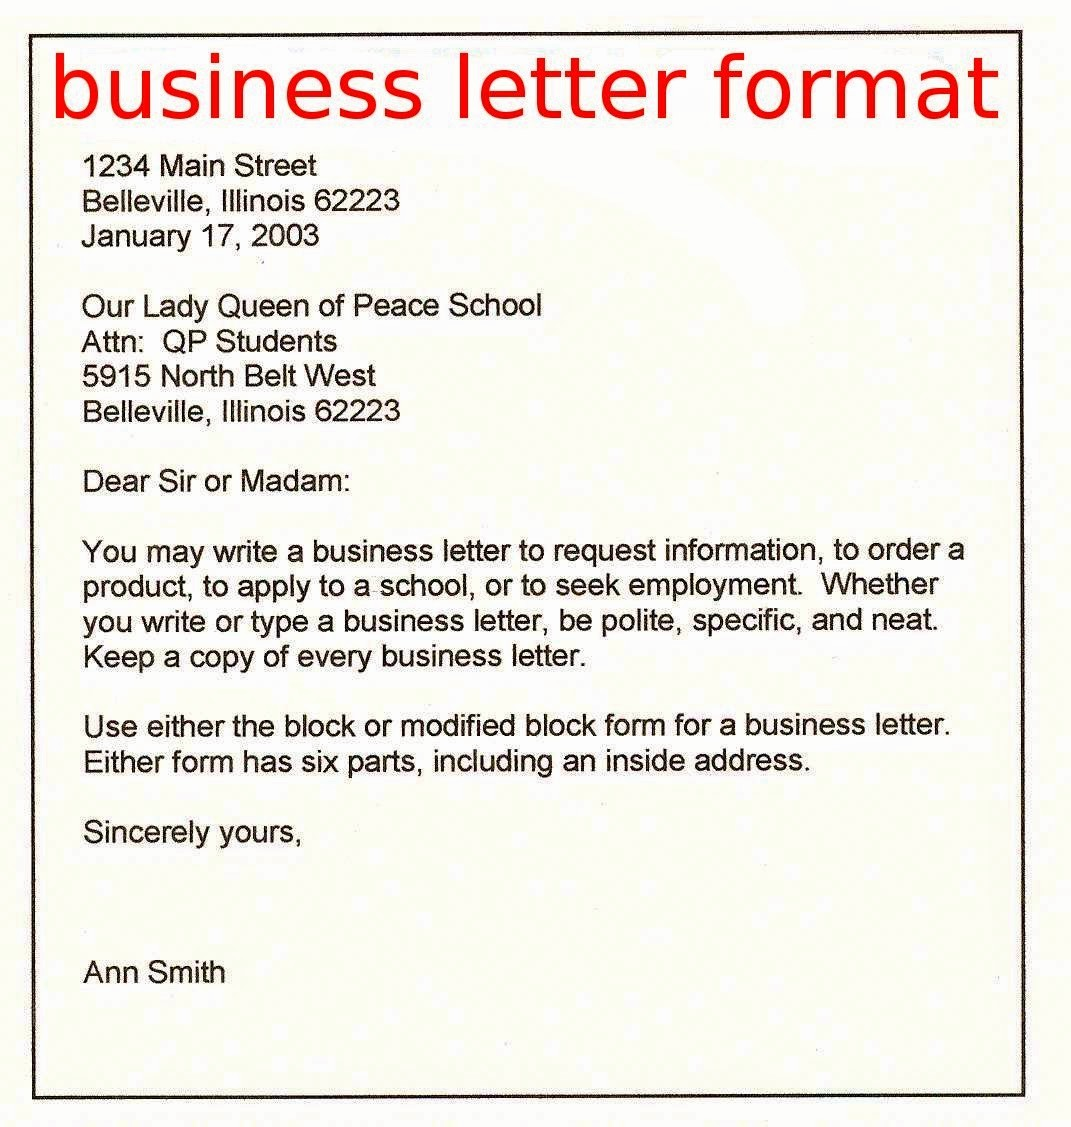 Format for formal Business Letter Lovely April 2015 Samples Business Letters